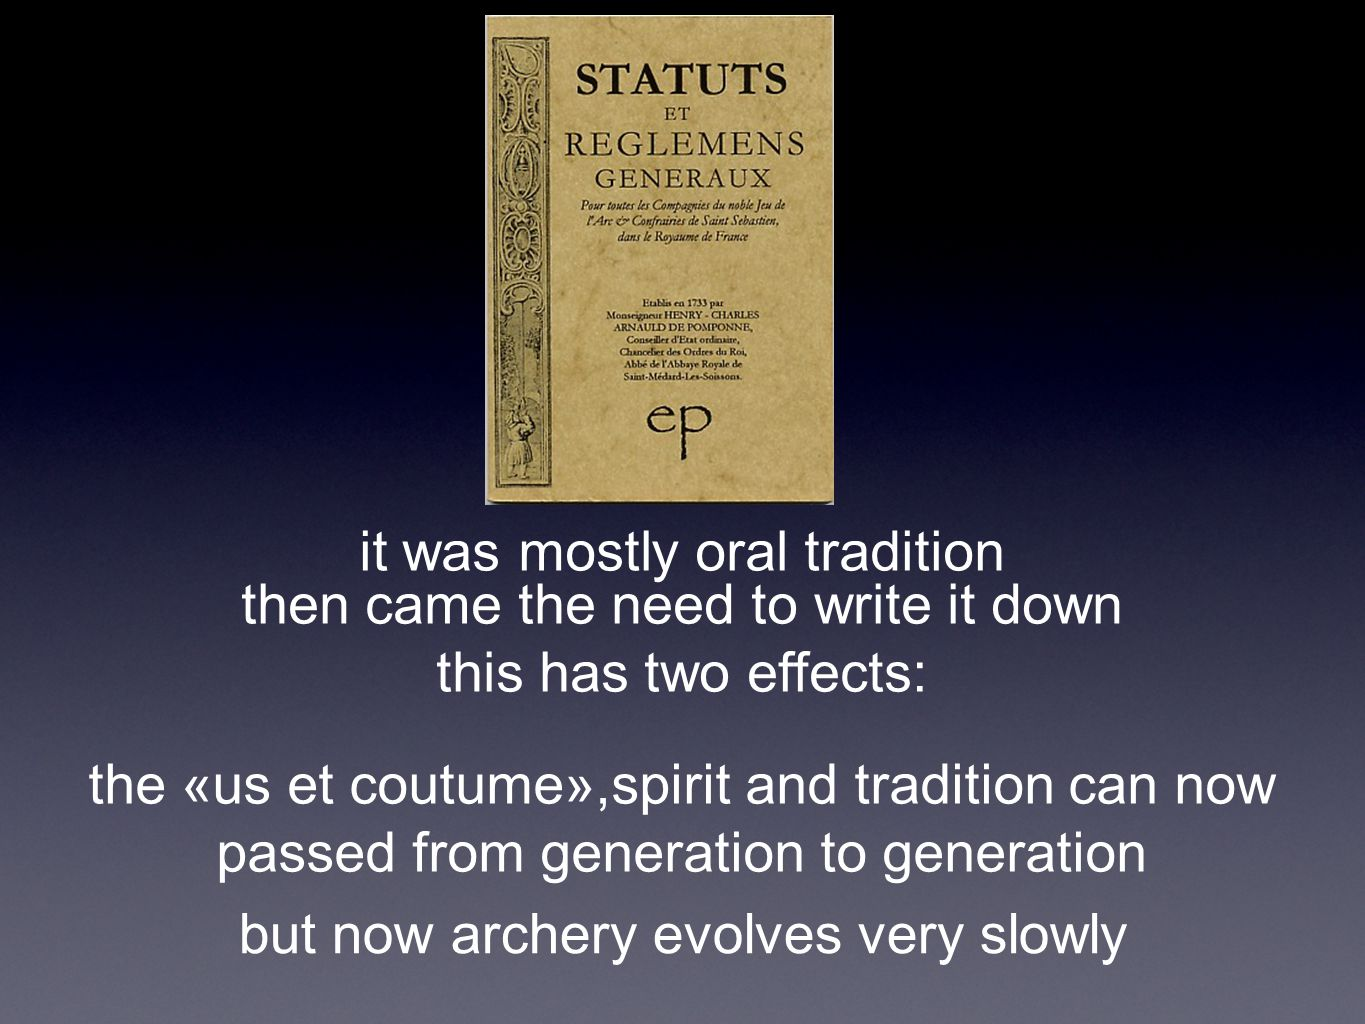 it was mostly oral tradition then came the need to write it down this has two effects: the «us et coutume»,spirit and tradition can now passed from generation to generation but now archery evolves very slowly